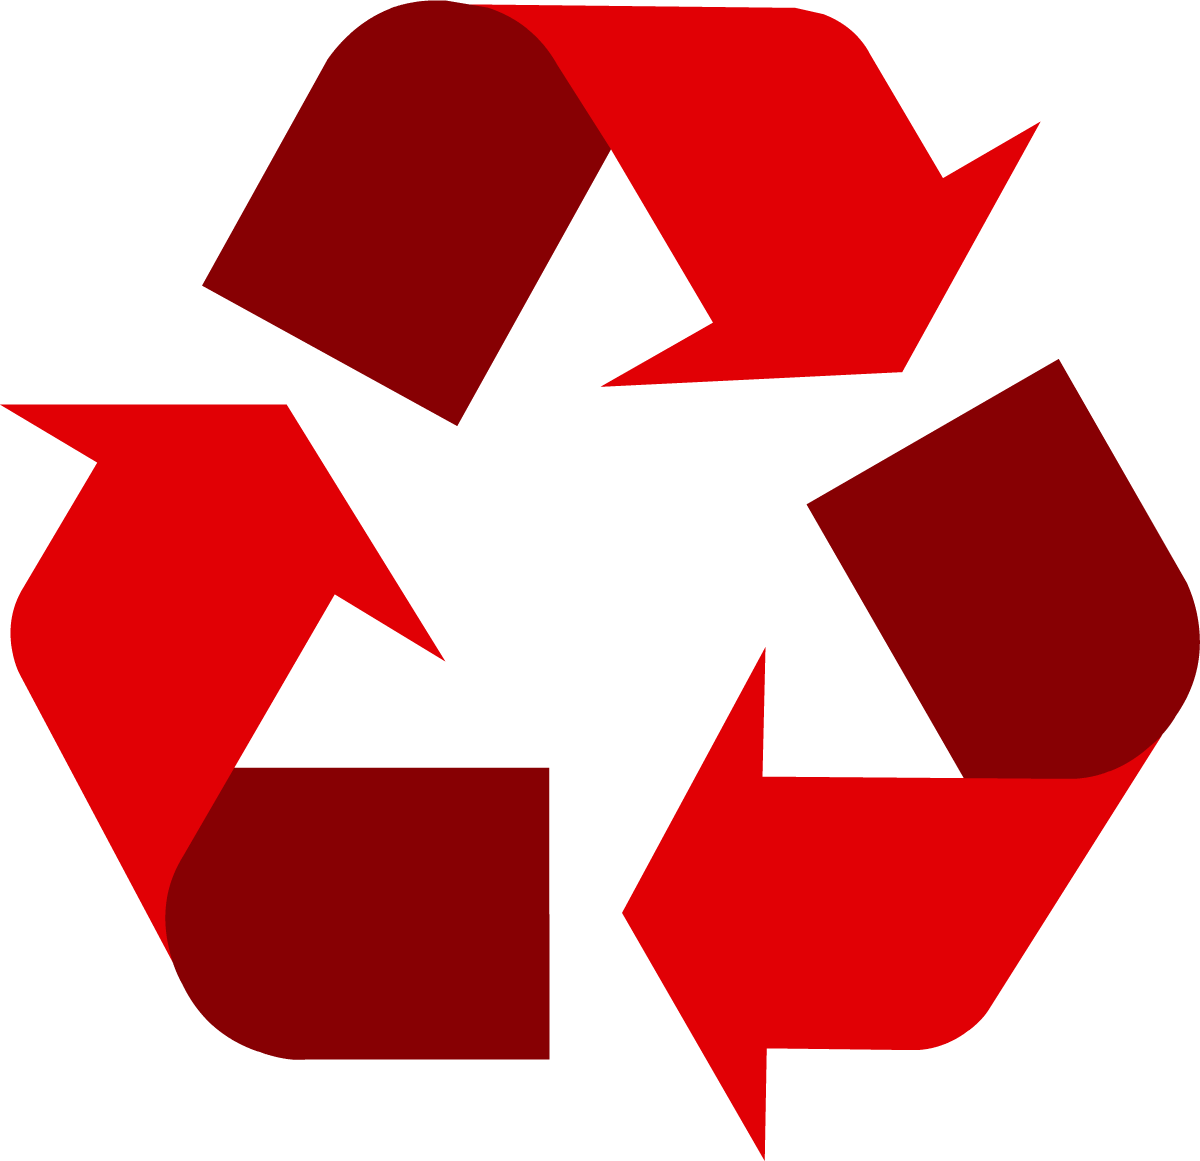 Red universal symbol logo. Clipart earth recycling